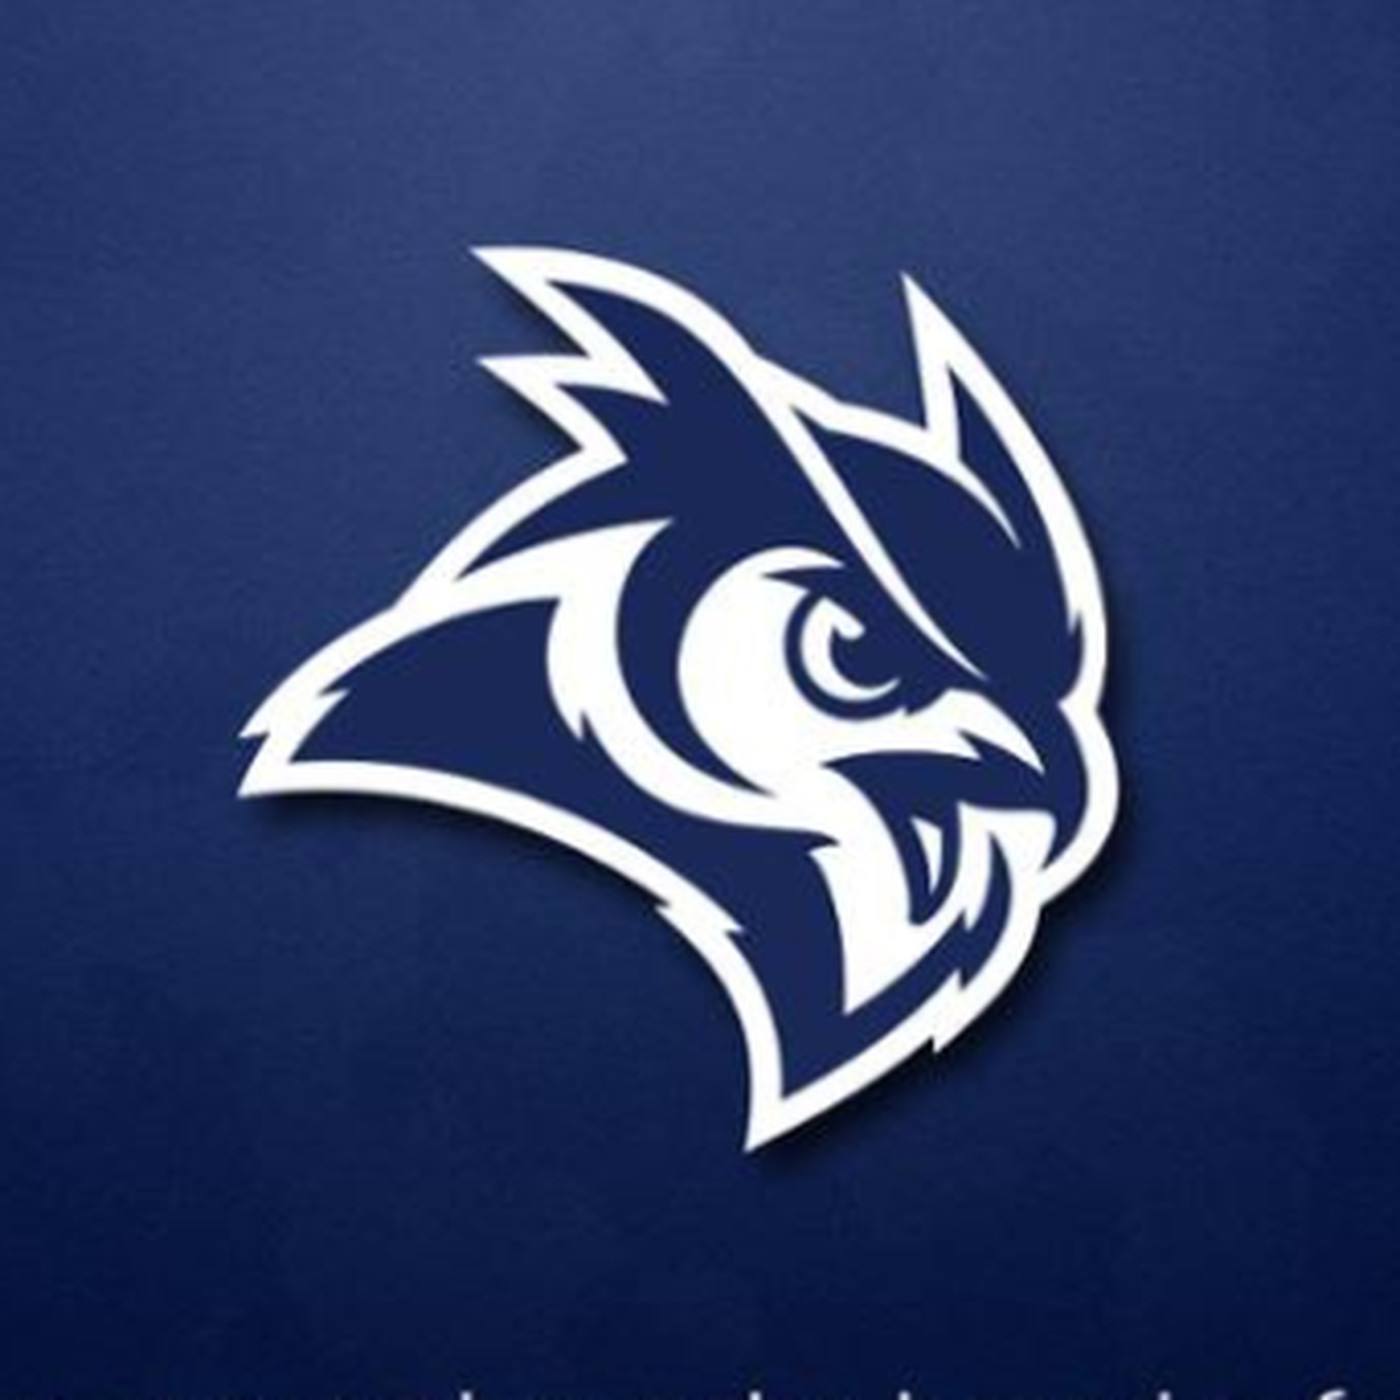 The Rice Owls have a new logo, and it\'s pretty sweet.